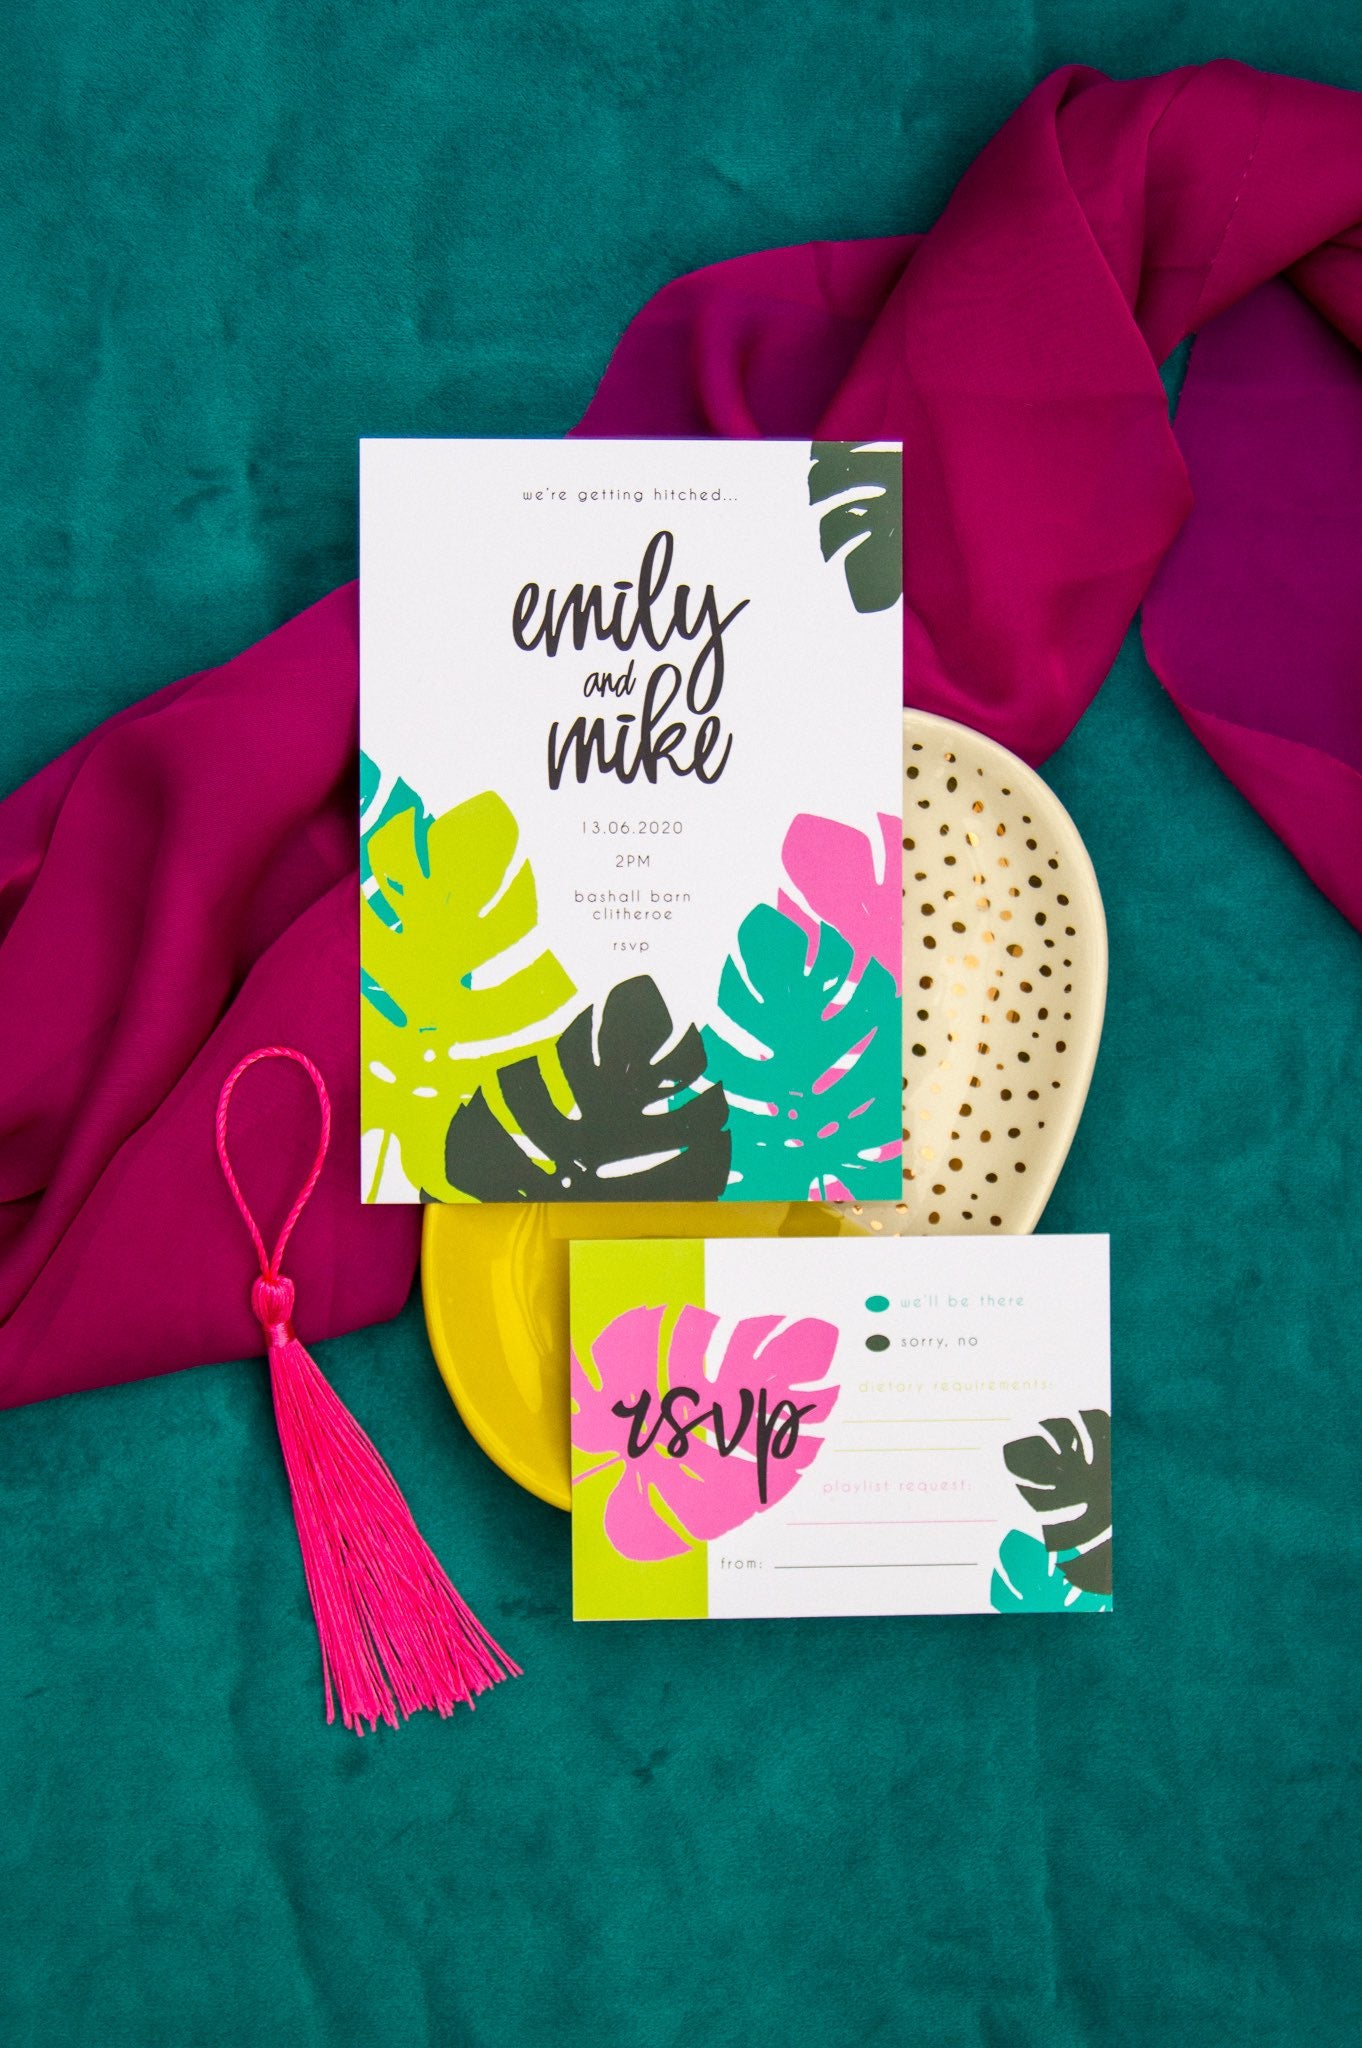 Wedding invitation and RSVP card with green and pink Monstera leave pattern on teal and pink fabric background.